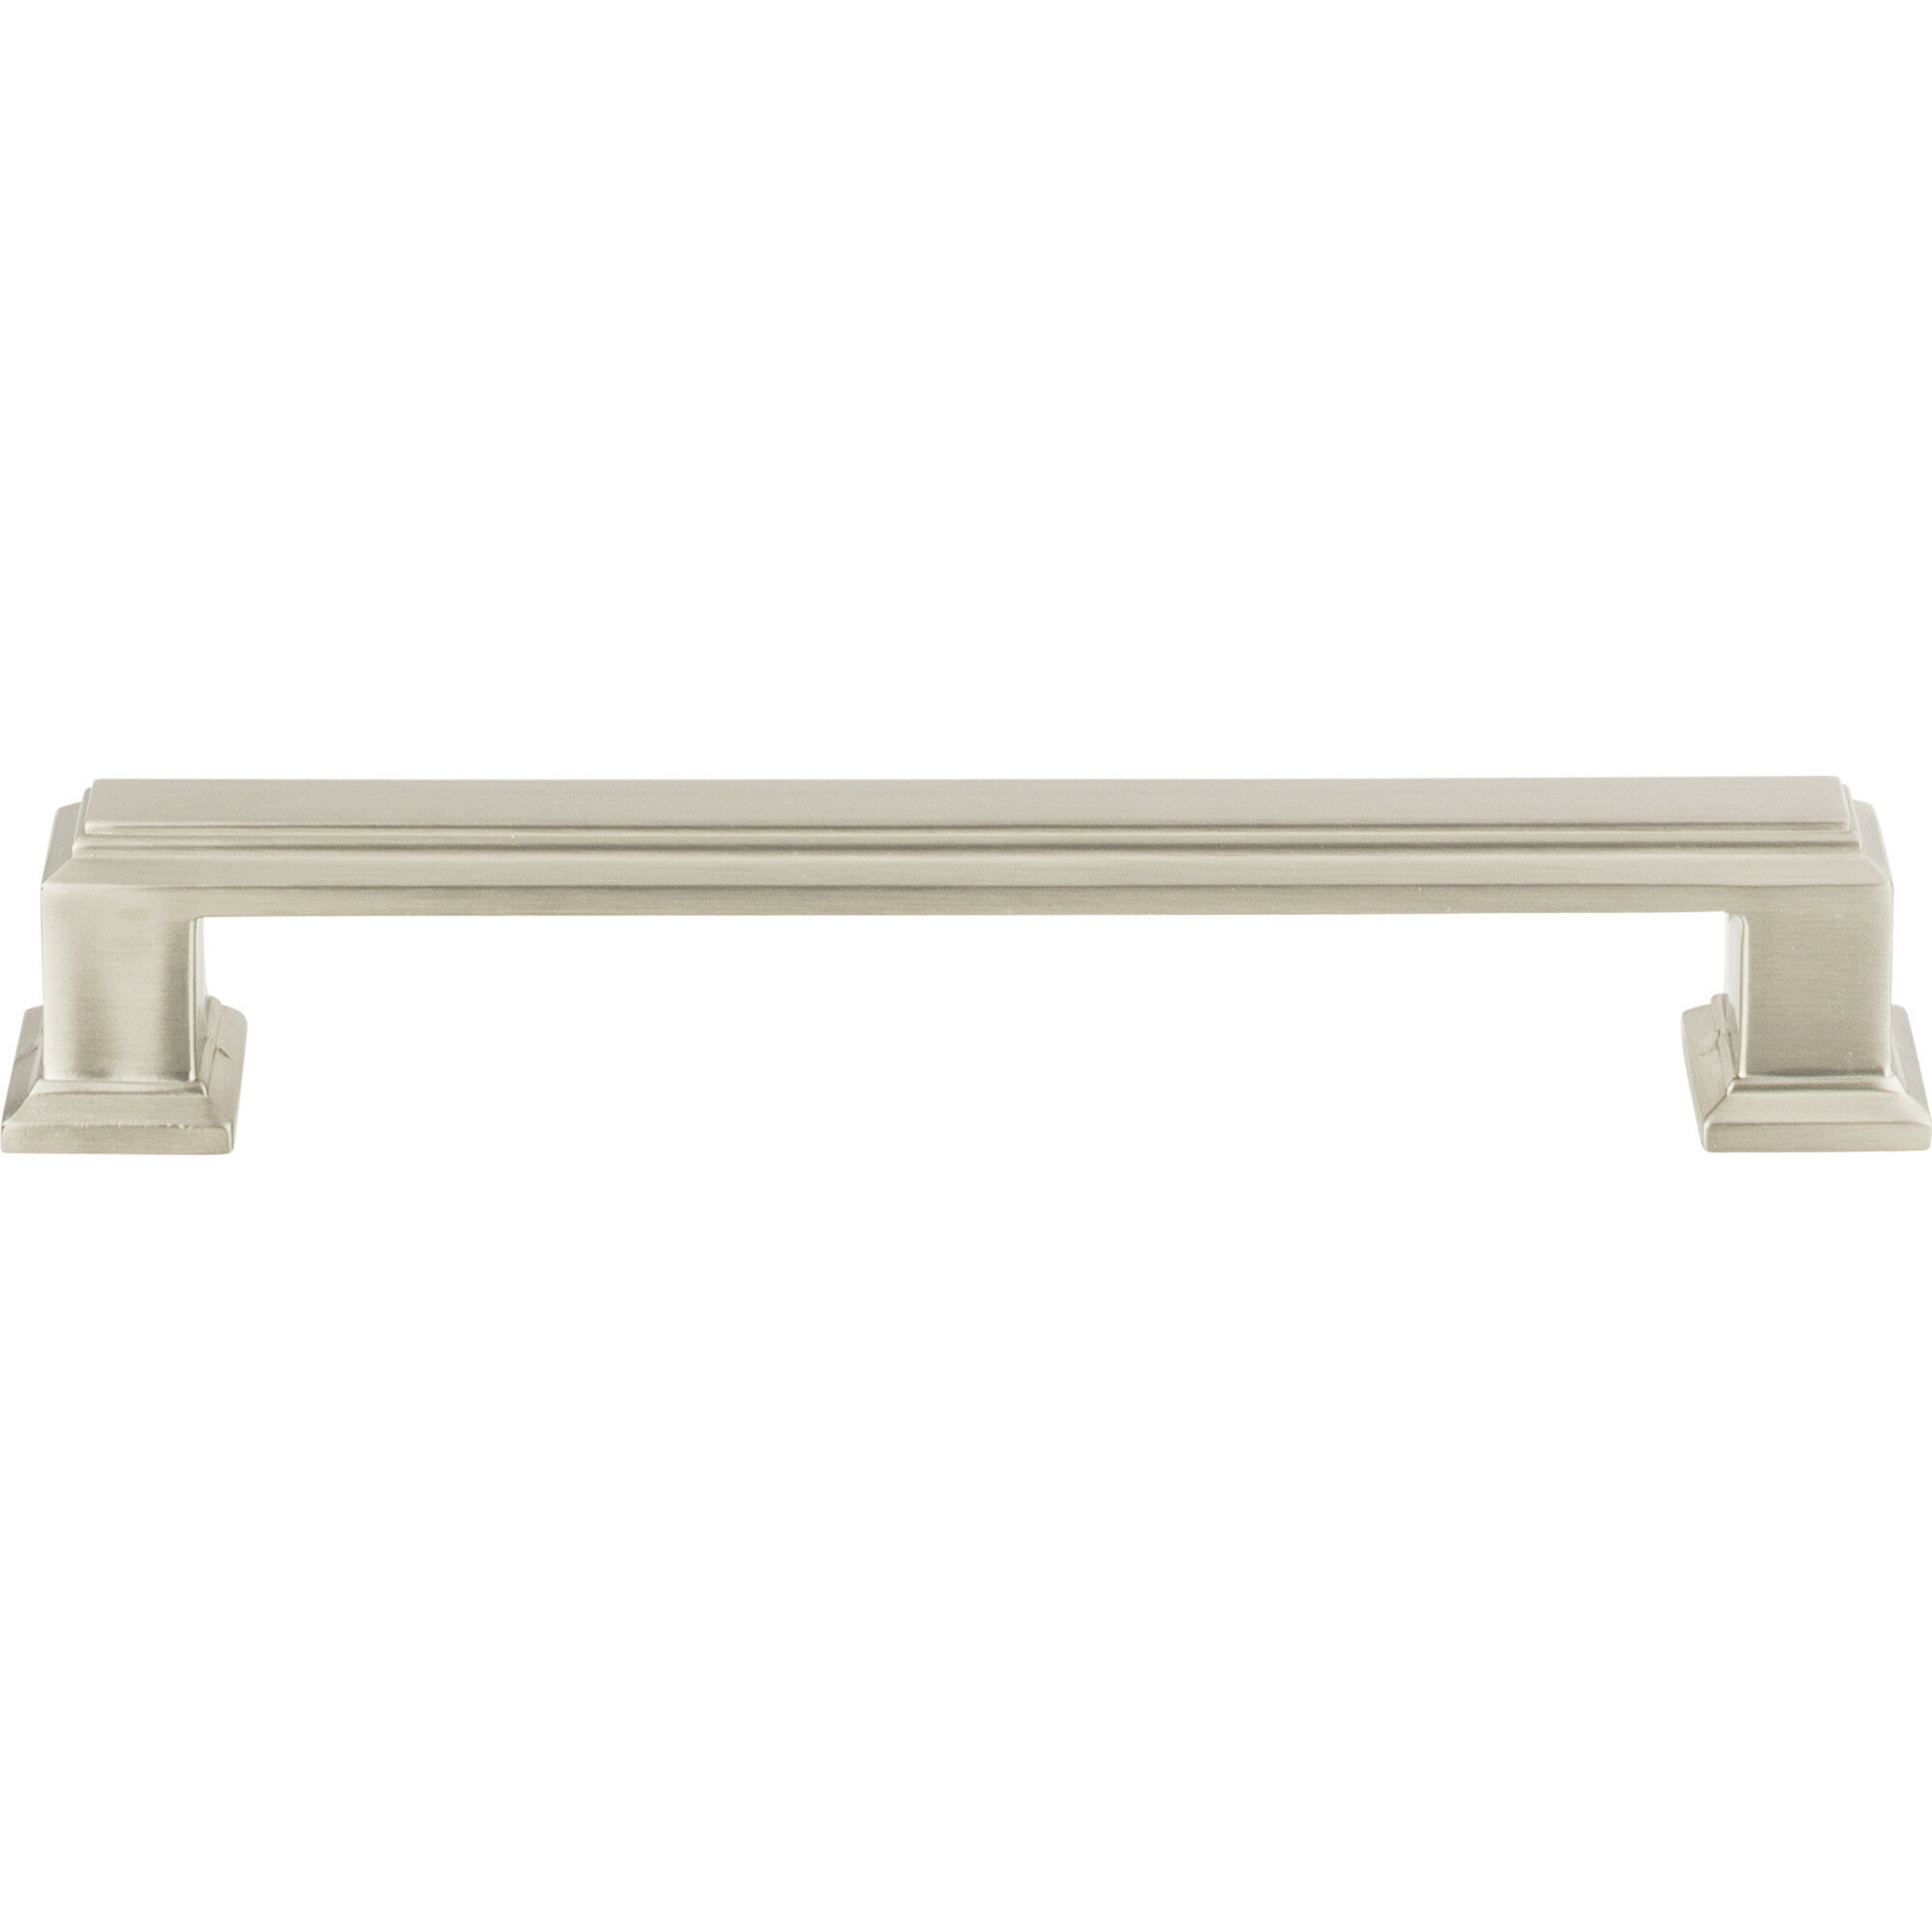 Industrial Cabinet Drawer Pulls You Ll Love In 2021 Wayfair